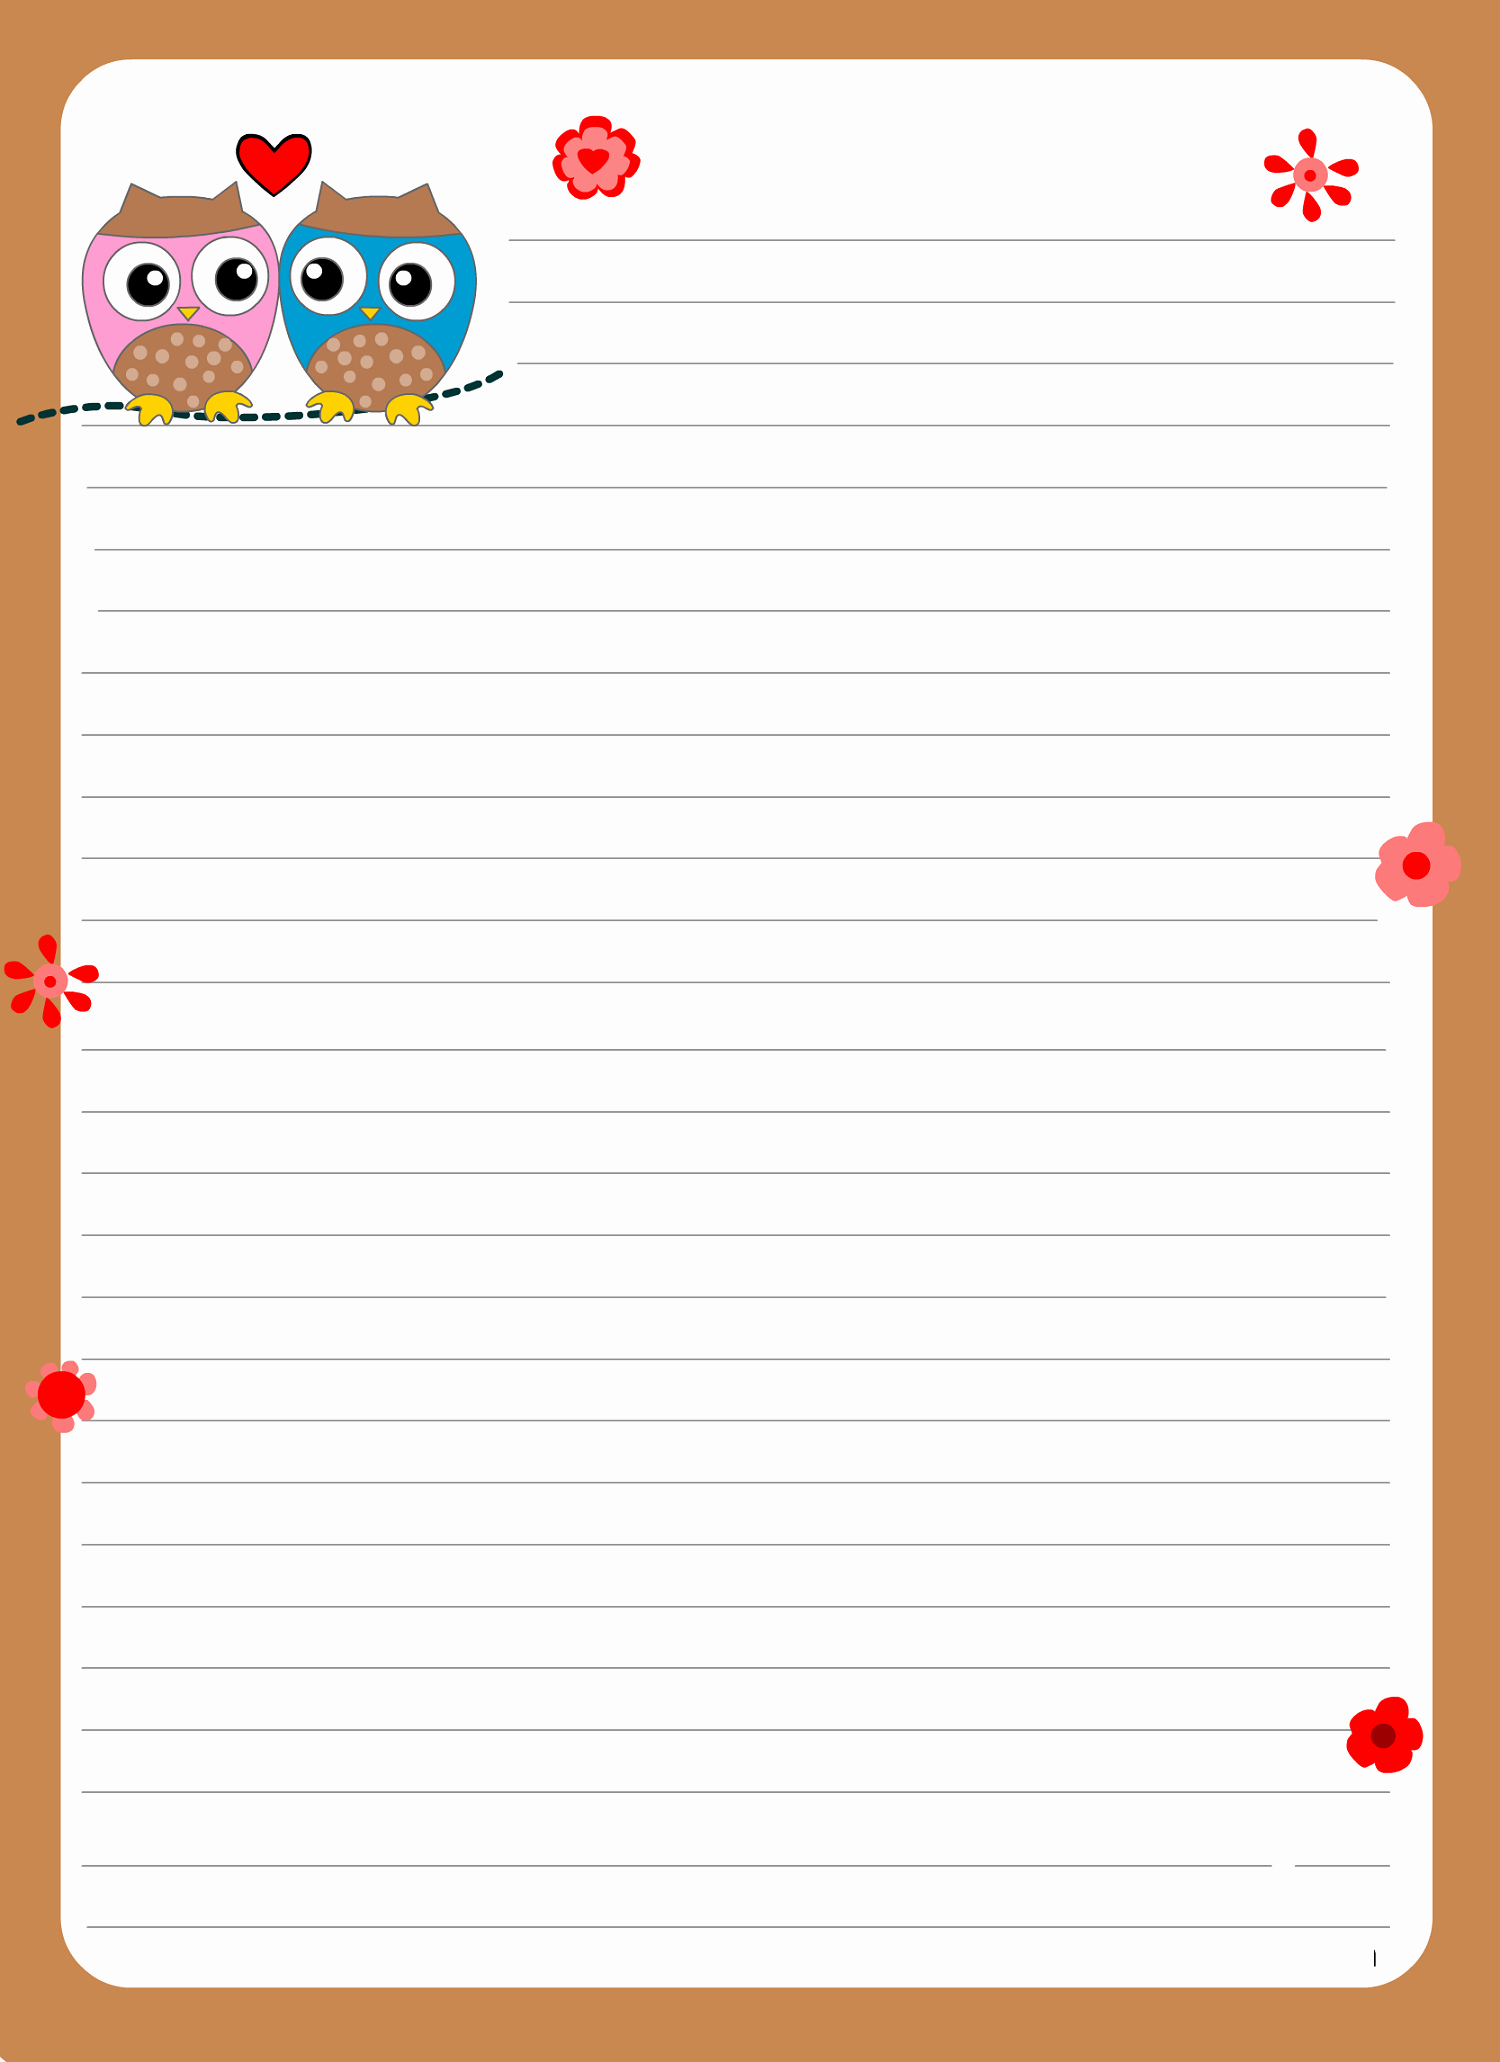 Lined Writing Paper Elegant Lined Paper for Writing for Cute Writing Paper